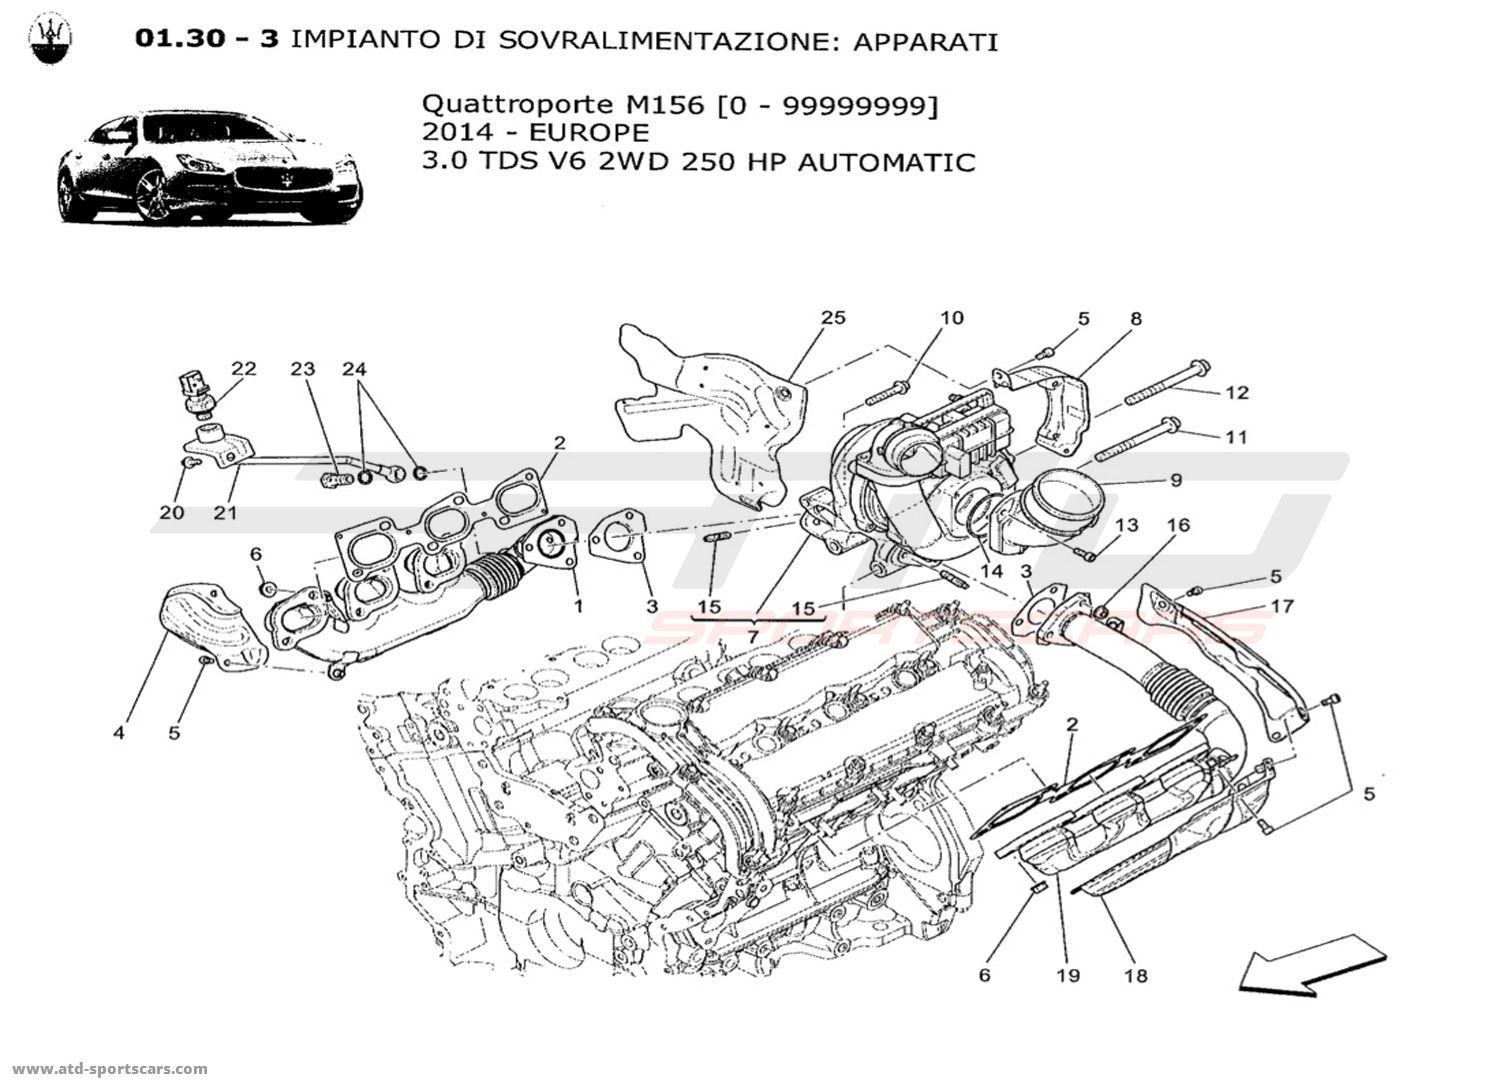 [2007 Maserati Quattroporte Timing Chain Repair Manual